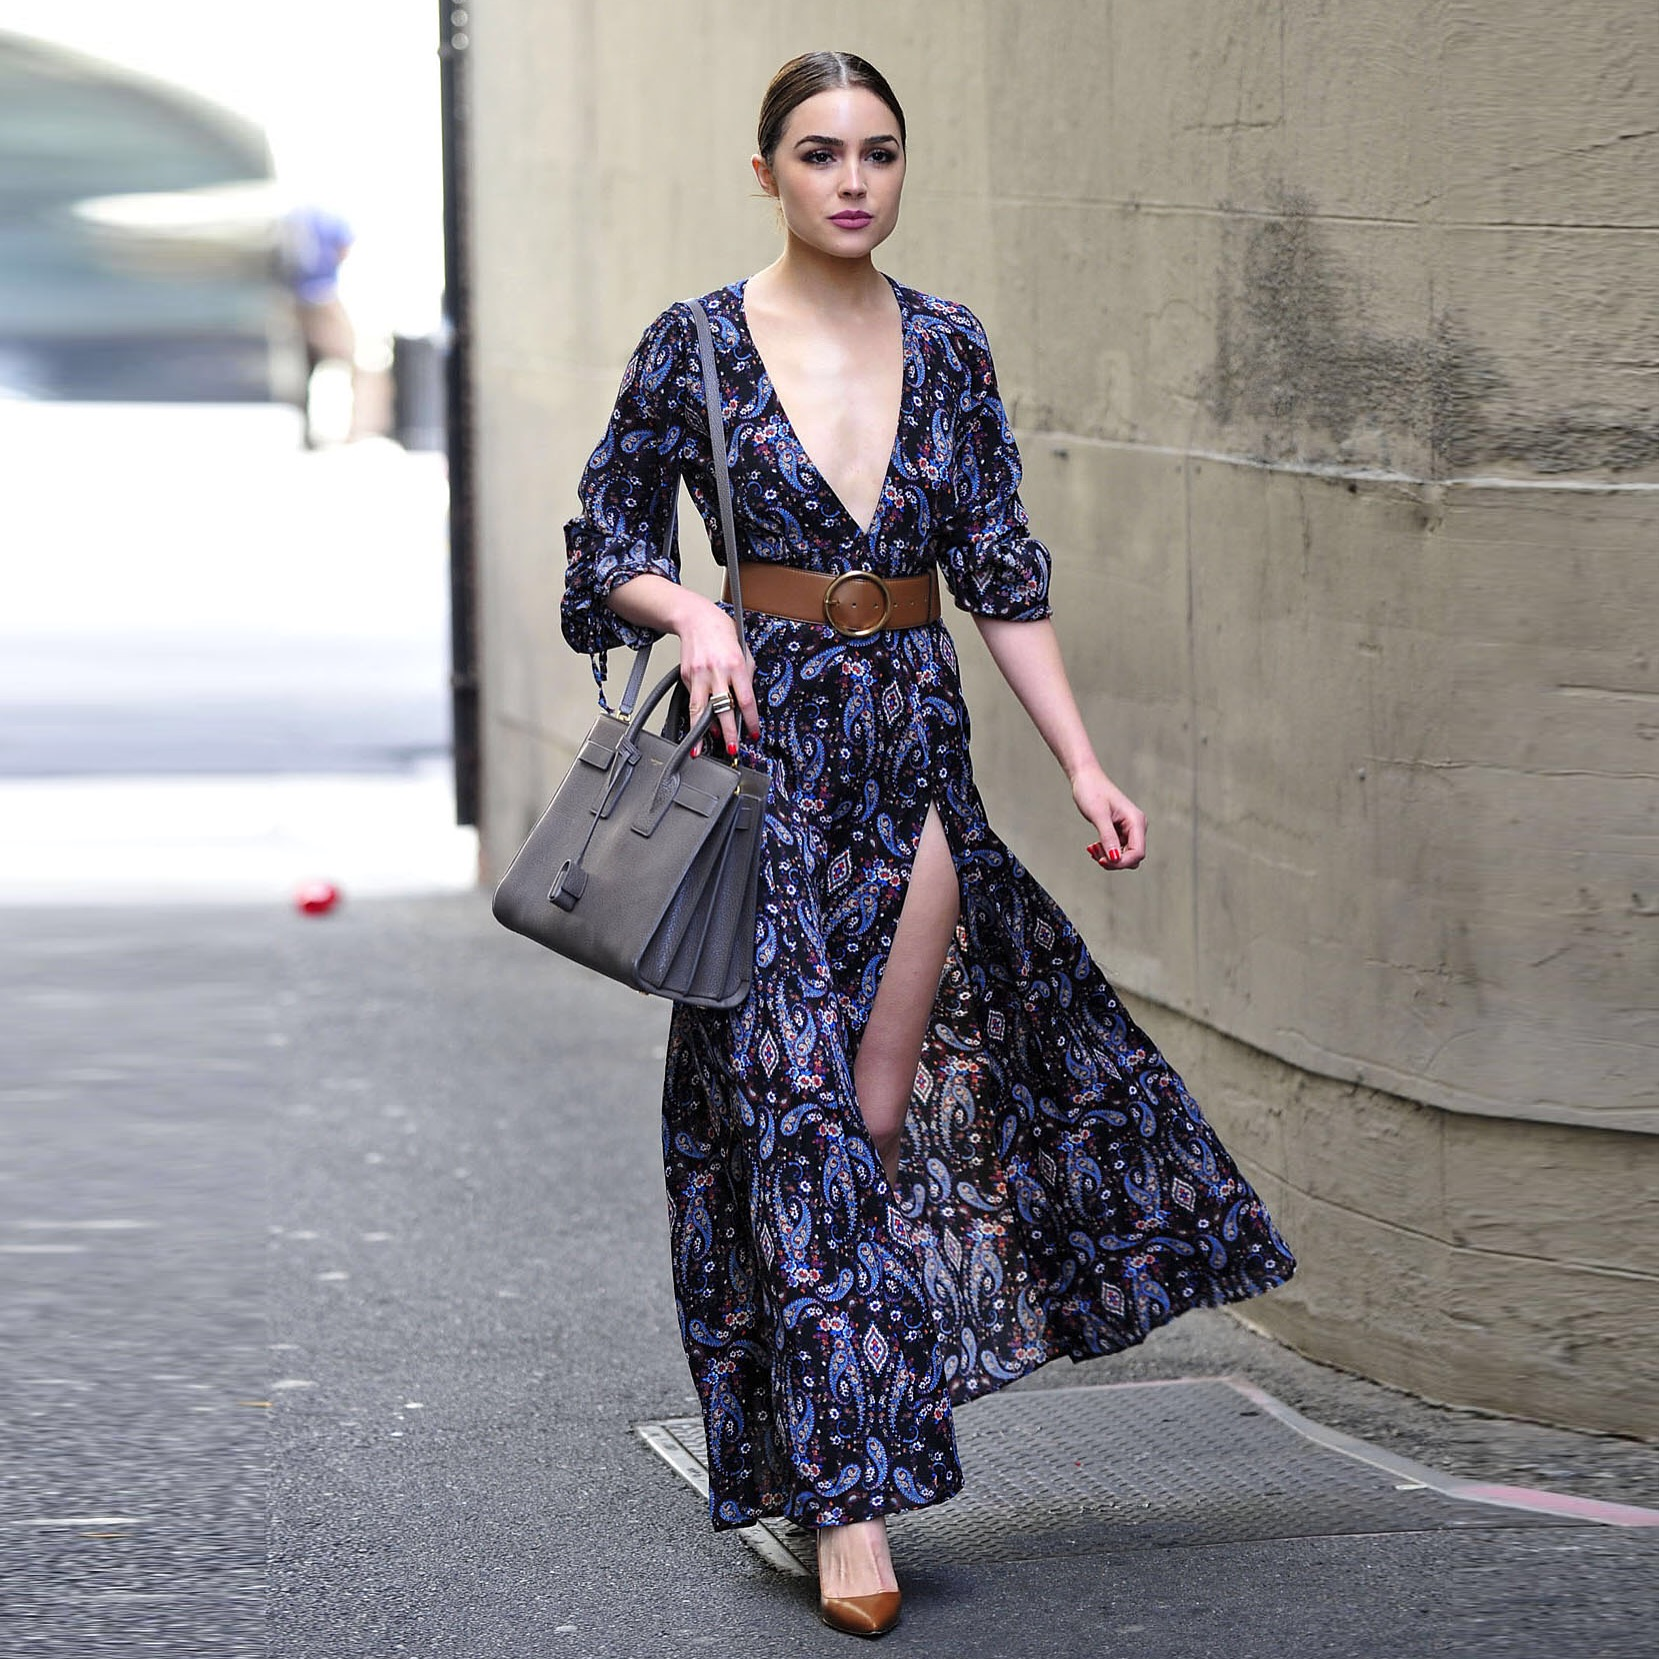 Exclusive - Los Angeles, CA - 04/01/2016 - Olivia Culpo looking stunning while on her way to lunch in LA. -PICTURED: Olivia Culpo -PHOTO by: Michael Simon/startraksphoto.com -MS310219 Editorial - Rights Managed Image - Please contact www.startraksphoto.com for licensing fee Startraks Photo Startraks Photo New York, NY For licensing please call 212-414-9464 or email sales@startraksphoto.com Image may not be published in any way that is or might be deemed defamatory, libelous, pornographic, or obscene. Please consult our sales department for any clarification or question you may have Startraks Photo reserves the right to pursue unauthorized users of this image. If you violate our intellectual property you may be liable for actual damages, loss of income, and profits you derive from the use of this image, and where appropriate, the cost of collection and/or statutory damages.